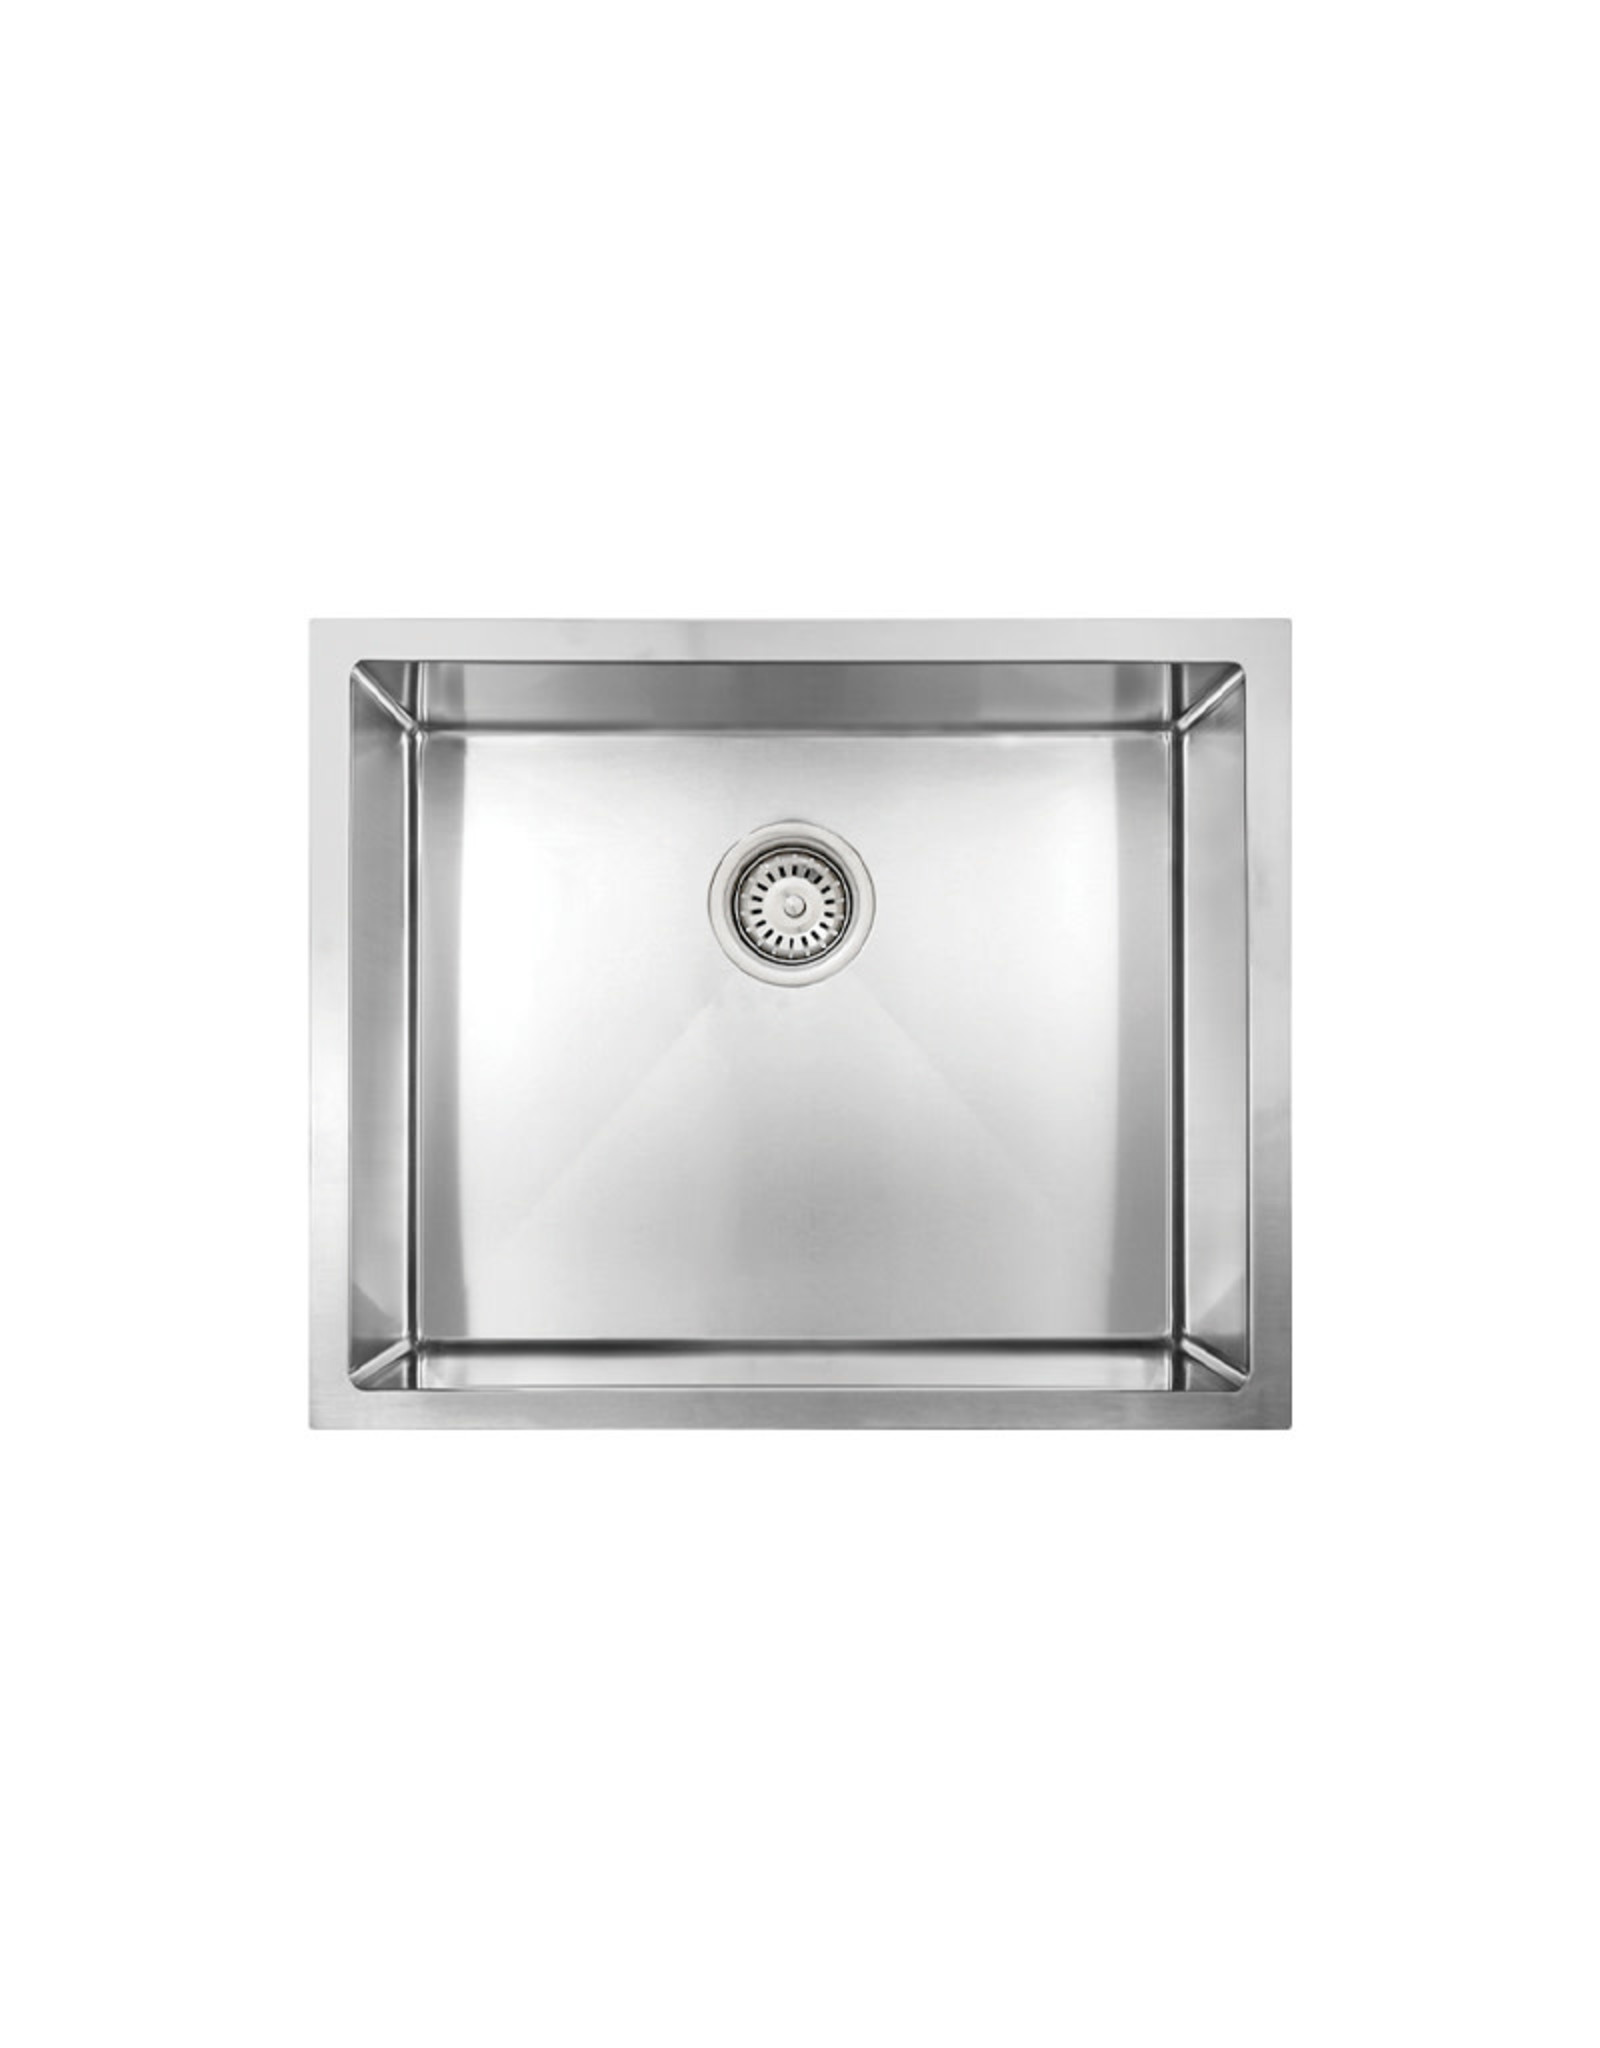 "Vogt VOGT SALZBURG 18R - UNDERMOUNT KITCHEN SINK - 23"" x 18"" x 9"""